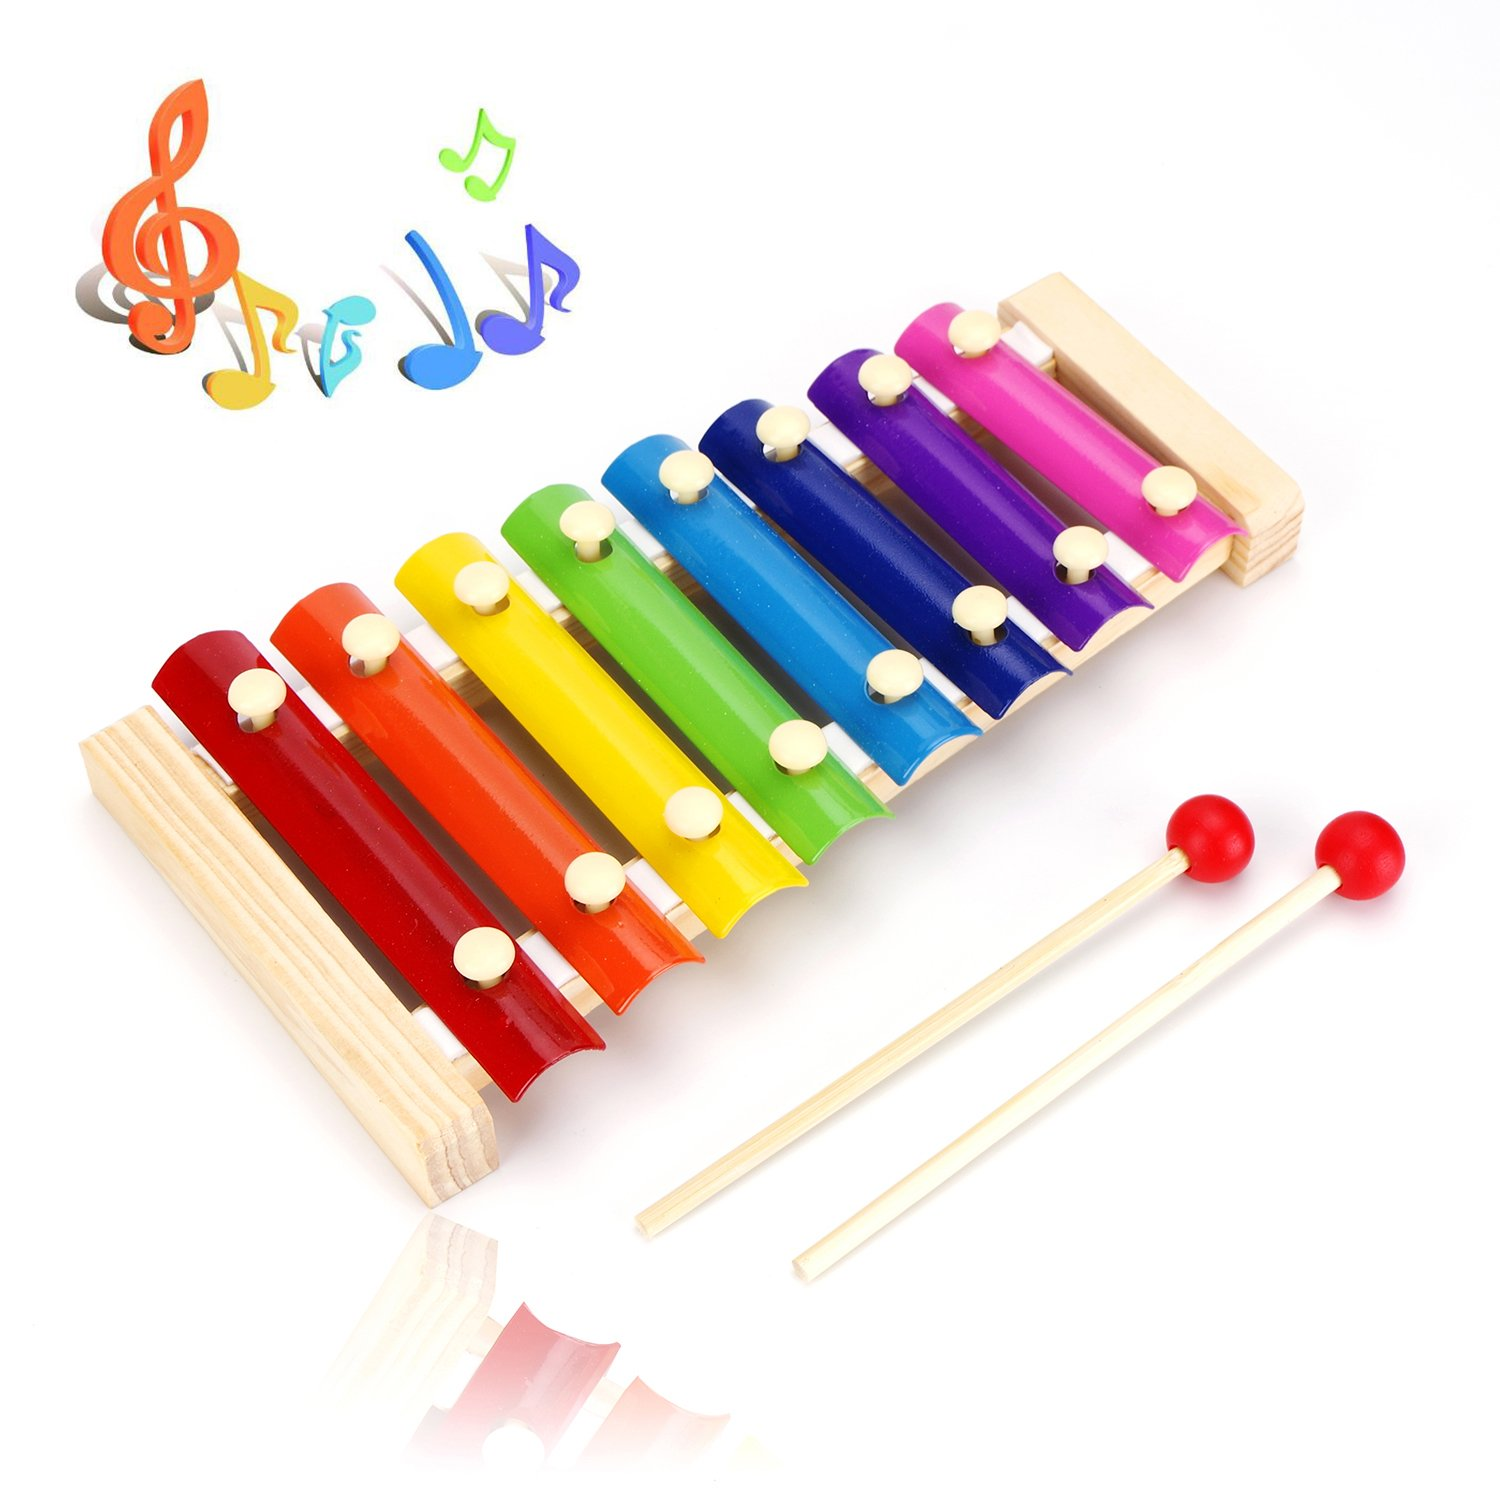 USATDD Wooden Xylophone Baby Musical Toy Instrument Piano with 8 Colored Bright Metal Keys and 2 Child-Safe Mallets for Kids Toddlers Boys Grils Inspire Children's Talent for Music